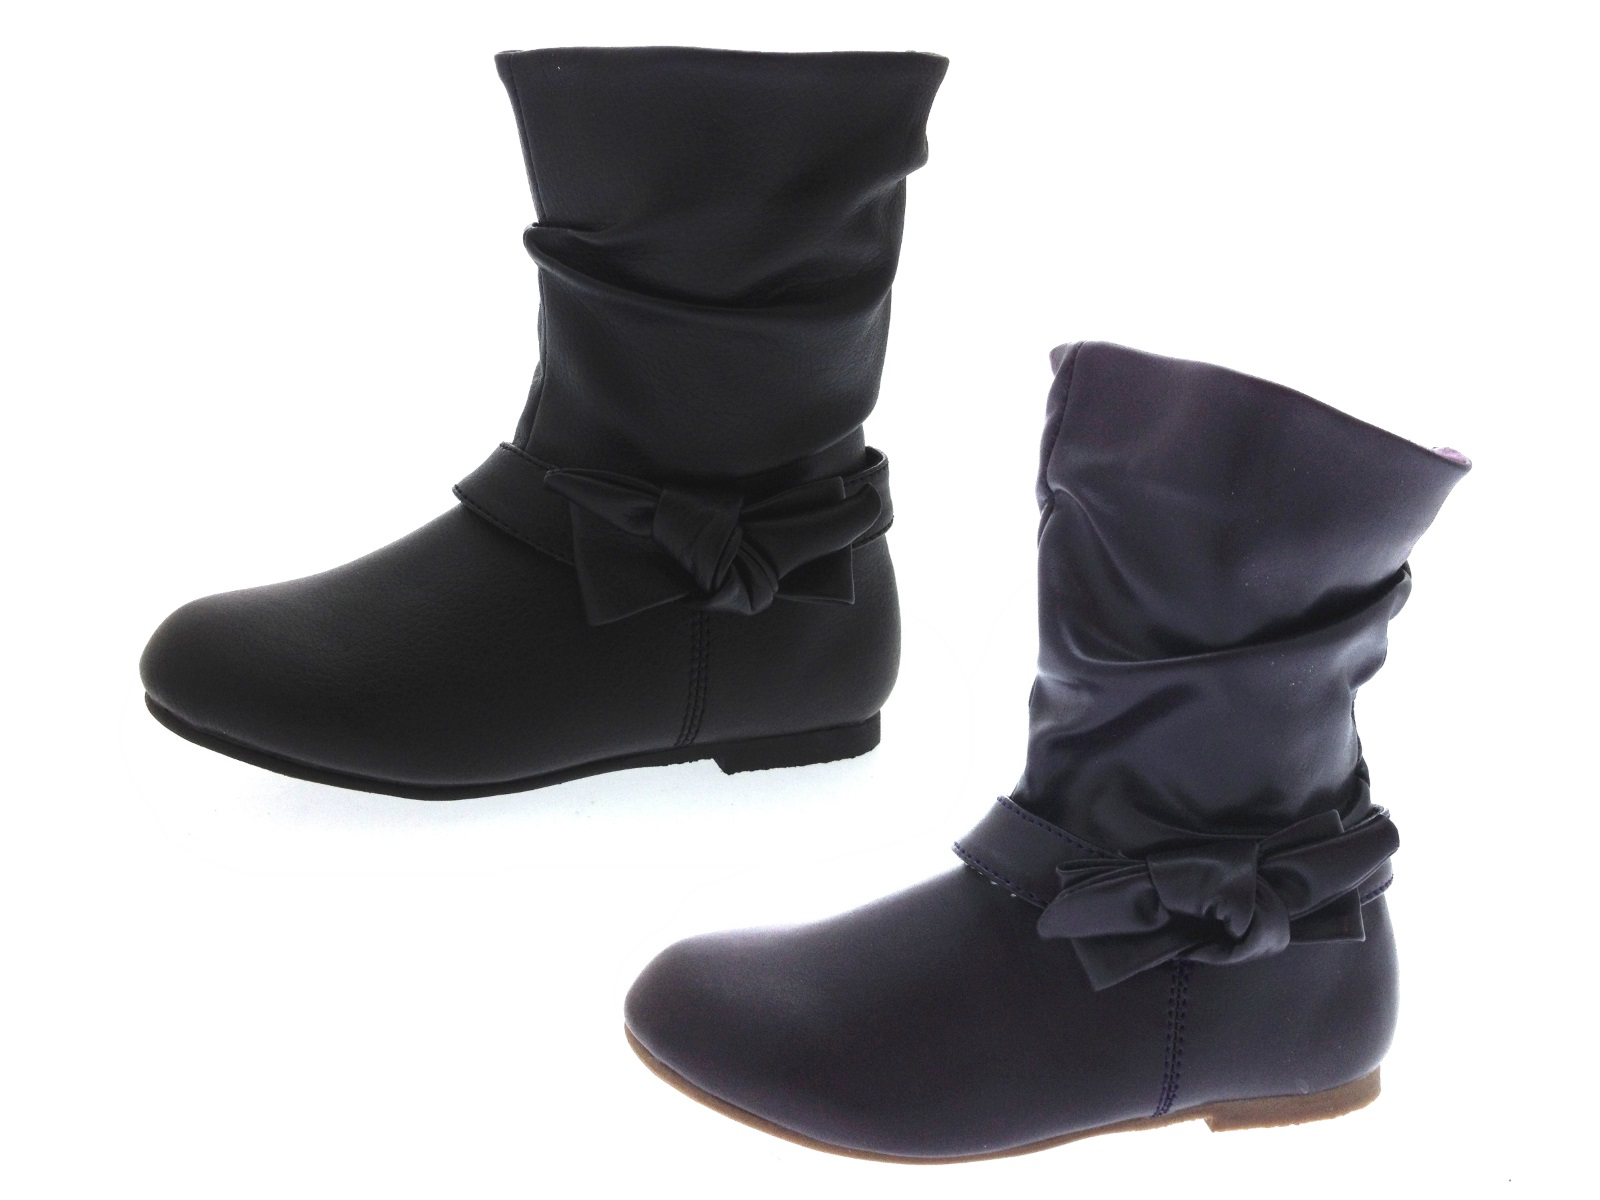 Kids Girls Mid Calf Boots Warm Winter Slouch Faux Leather School Shoes Size  6-12 8487c6b8ac58